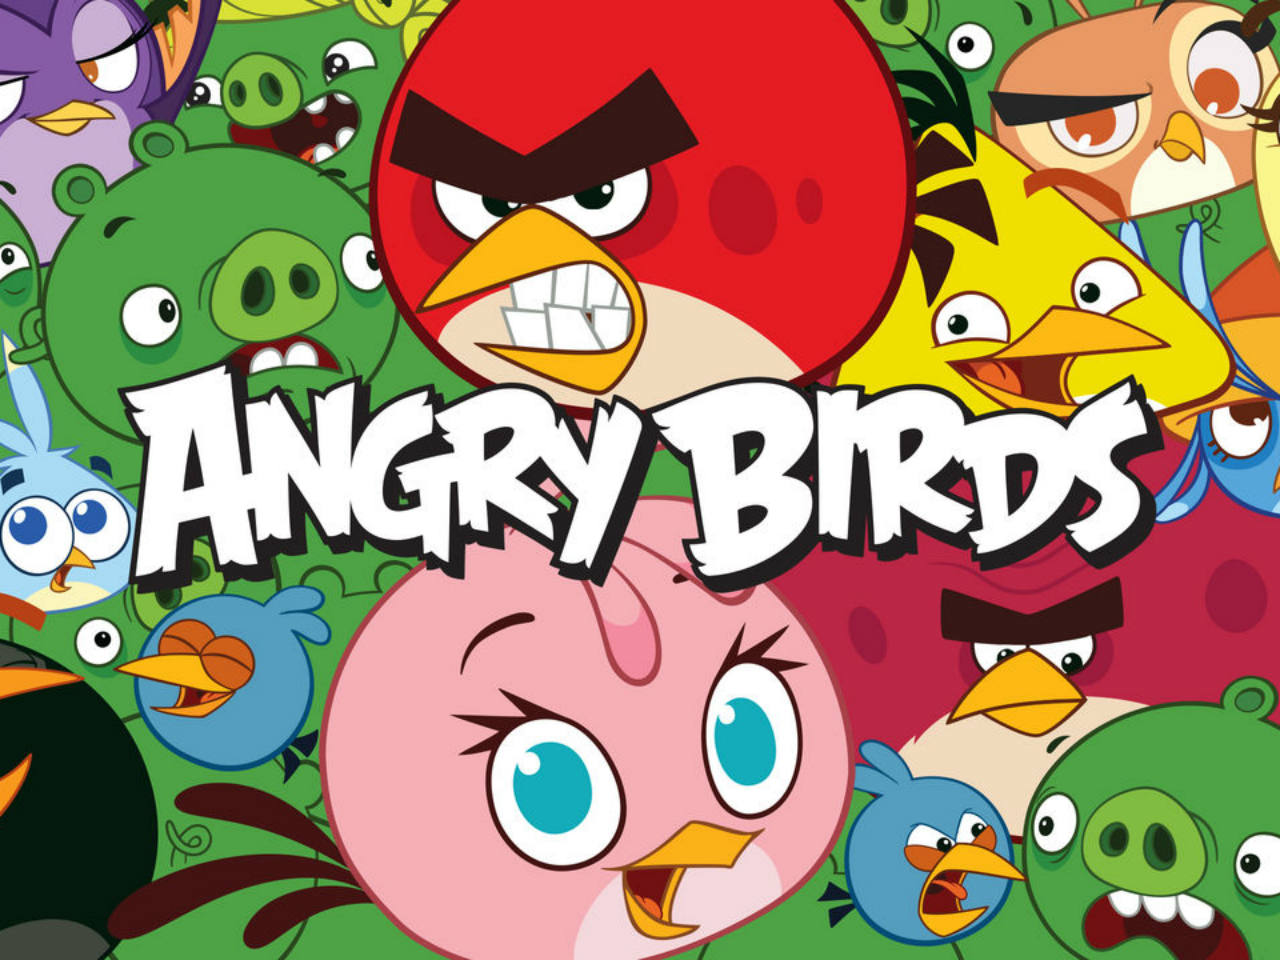 The movie poster for the kids' movie Angry Birds